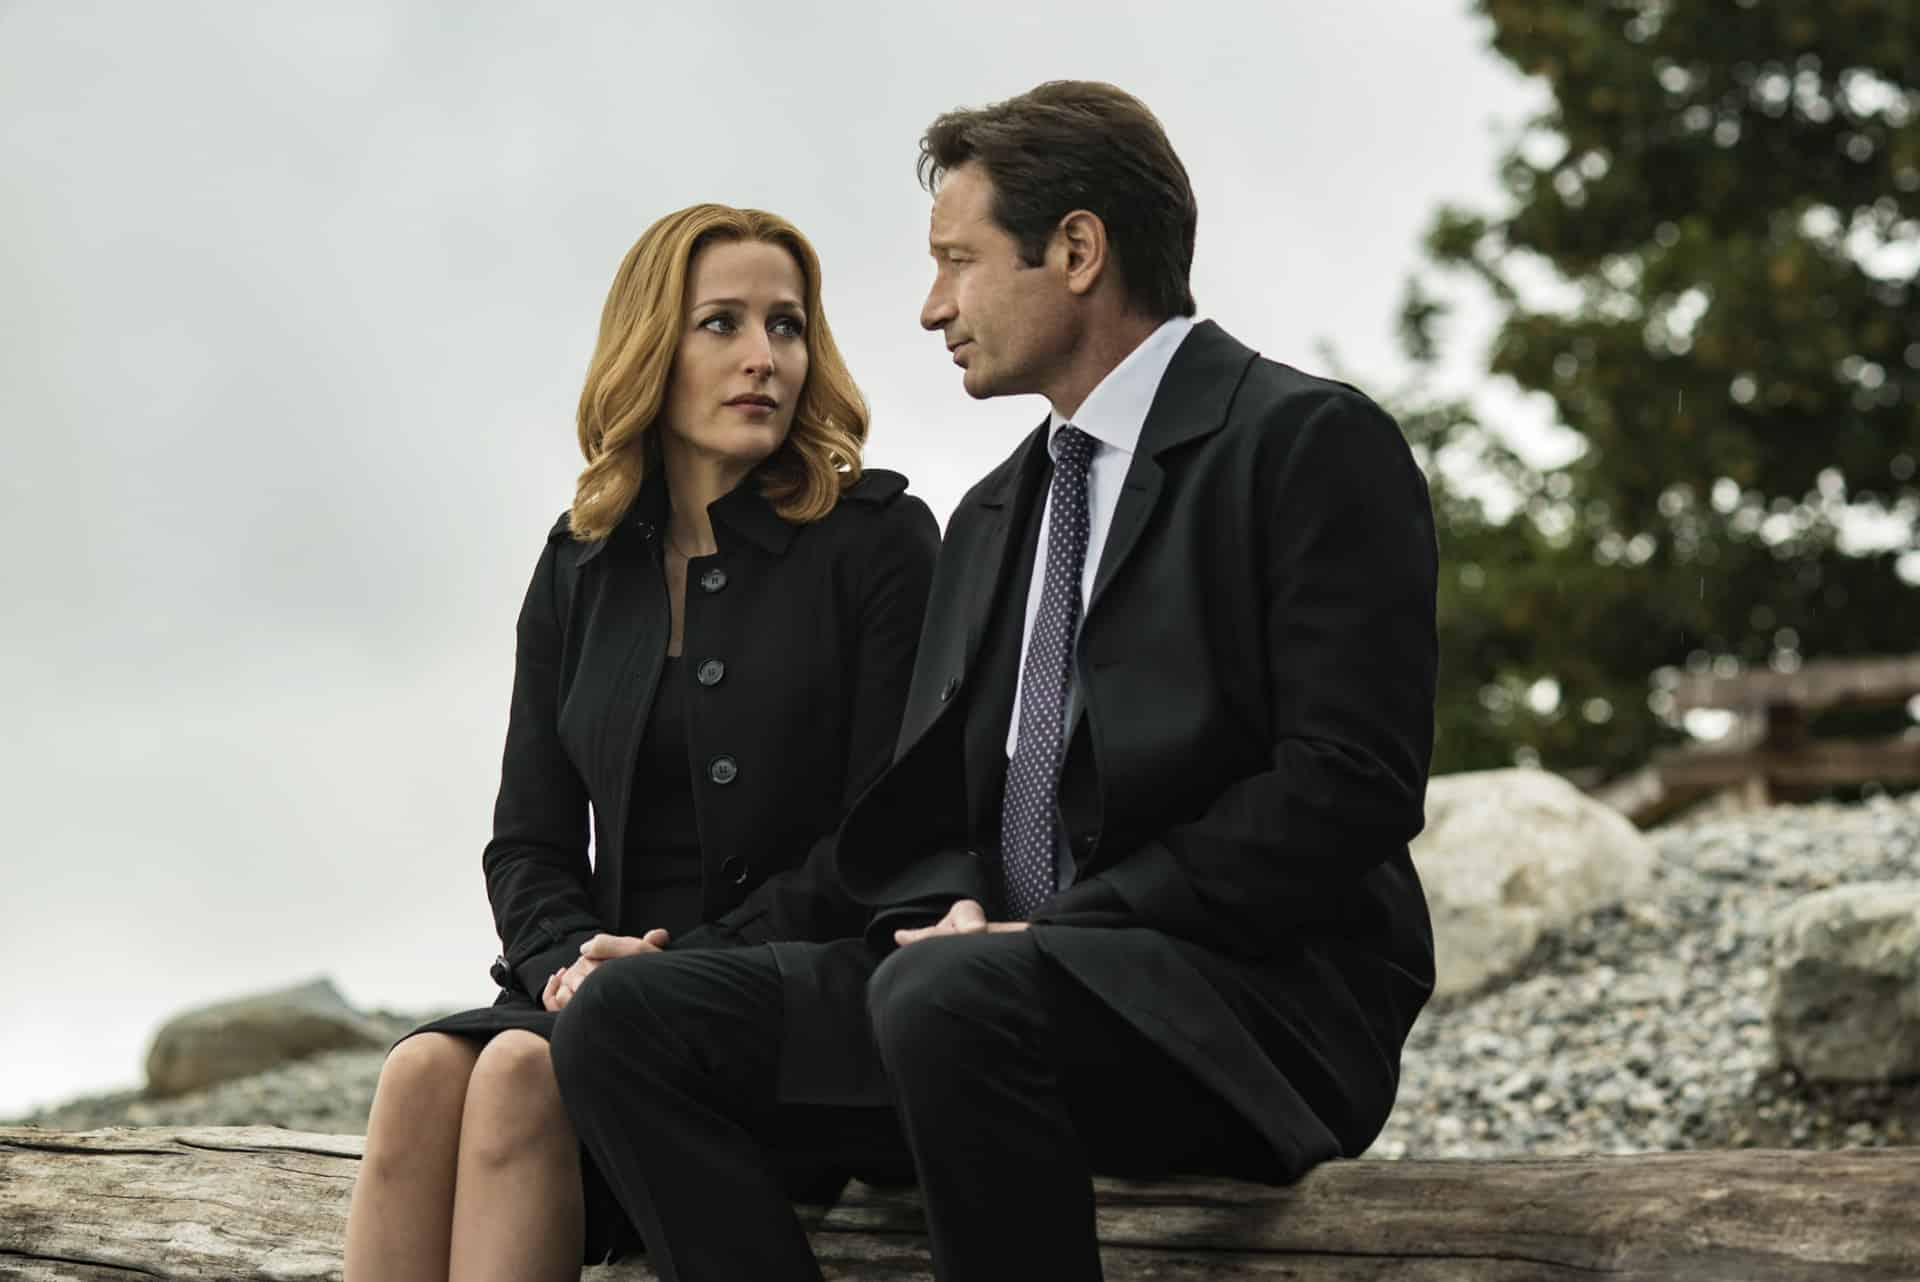 The X Files truth alien conspiracy with Fox Mulder, Chris Carter expands and goes nowhere, like Assassin Templar framing of Assassin's Creed